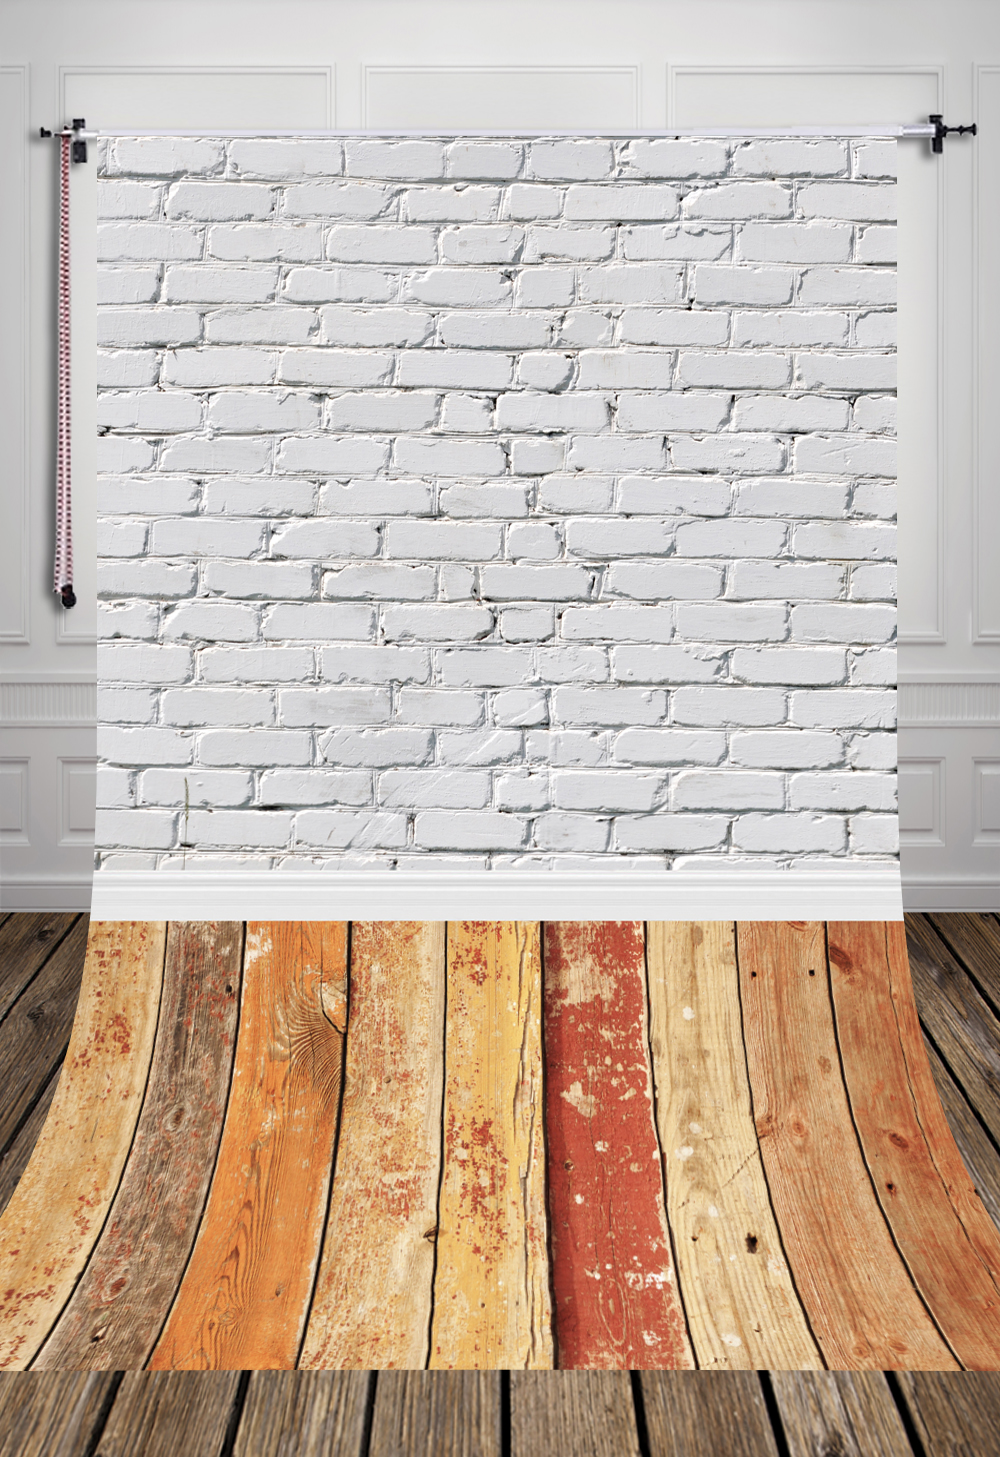 5x7ft (1.5x2.2) Hot sale newborn whie wall wood floor photography backdrop  Art fabric studio photography background D-044 - Wooden Floor Sale Promotion-Shop For Promotional Wooden Floor Sale